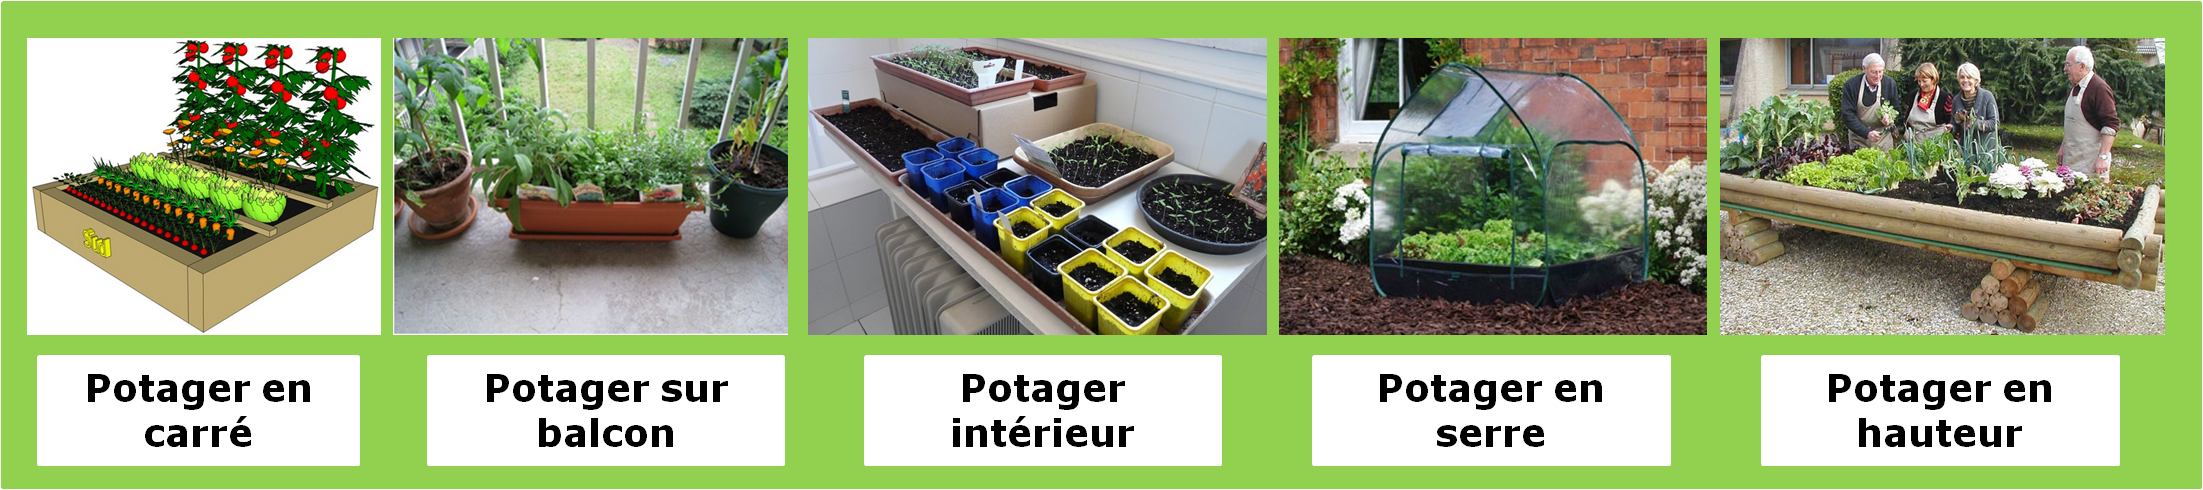 planter_son_potager_amenagements